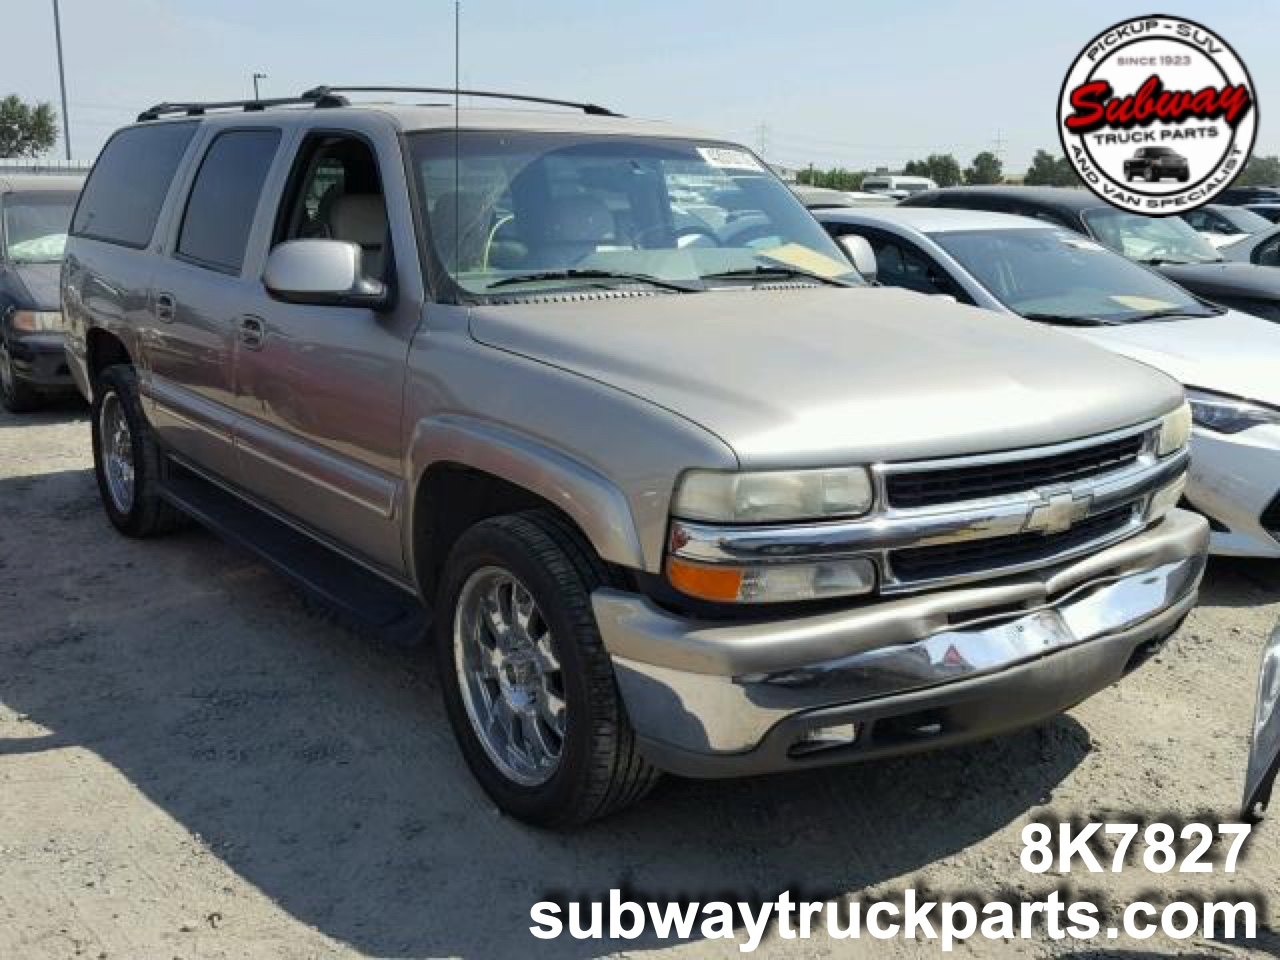 Pleasing Used Parts 2001 Chevrolet Suburban 1500 5 3L 4X4 Subway Caraccident5 Cool Chair Designs And Ideas Caraccident5Info